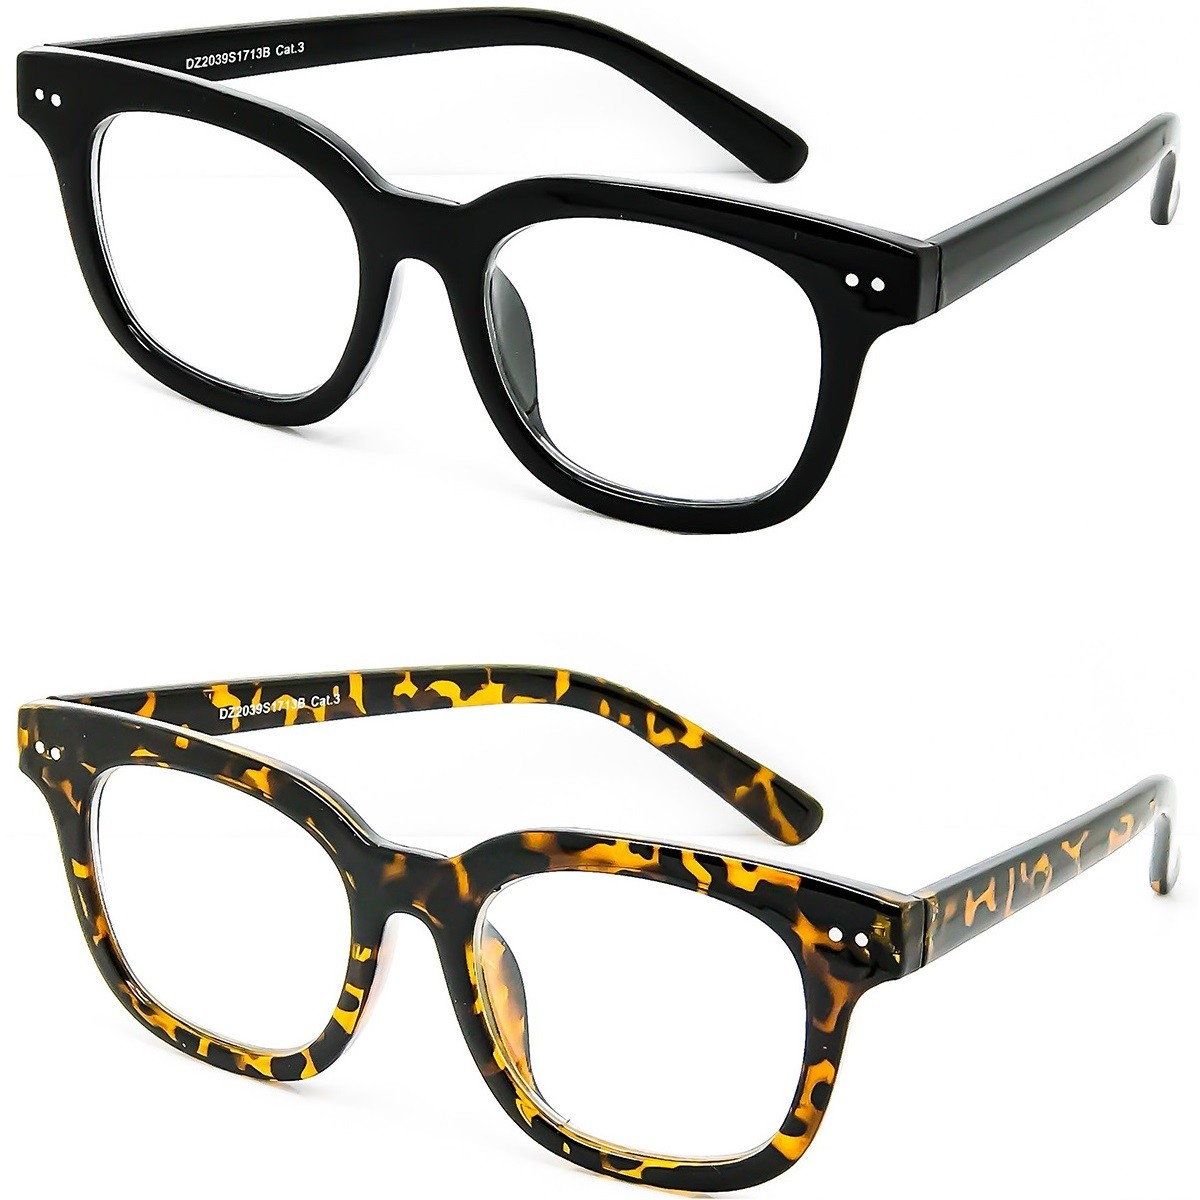 Glasses neutral KISS® - STYLE MOSCOT mod. BOXER - man woman VINTAGE optical frame COOL unisex - Color : BLACK